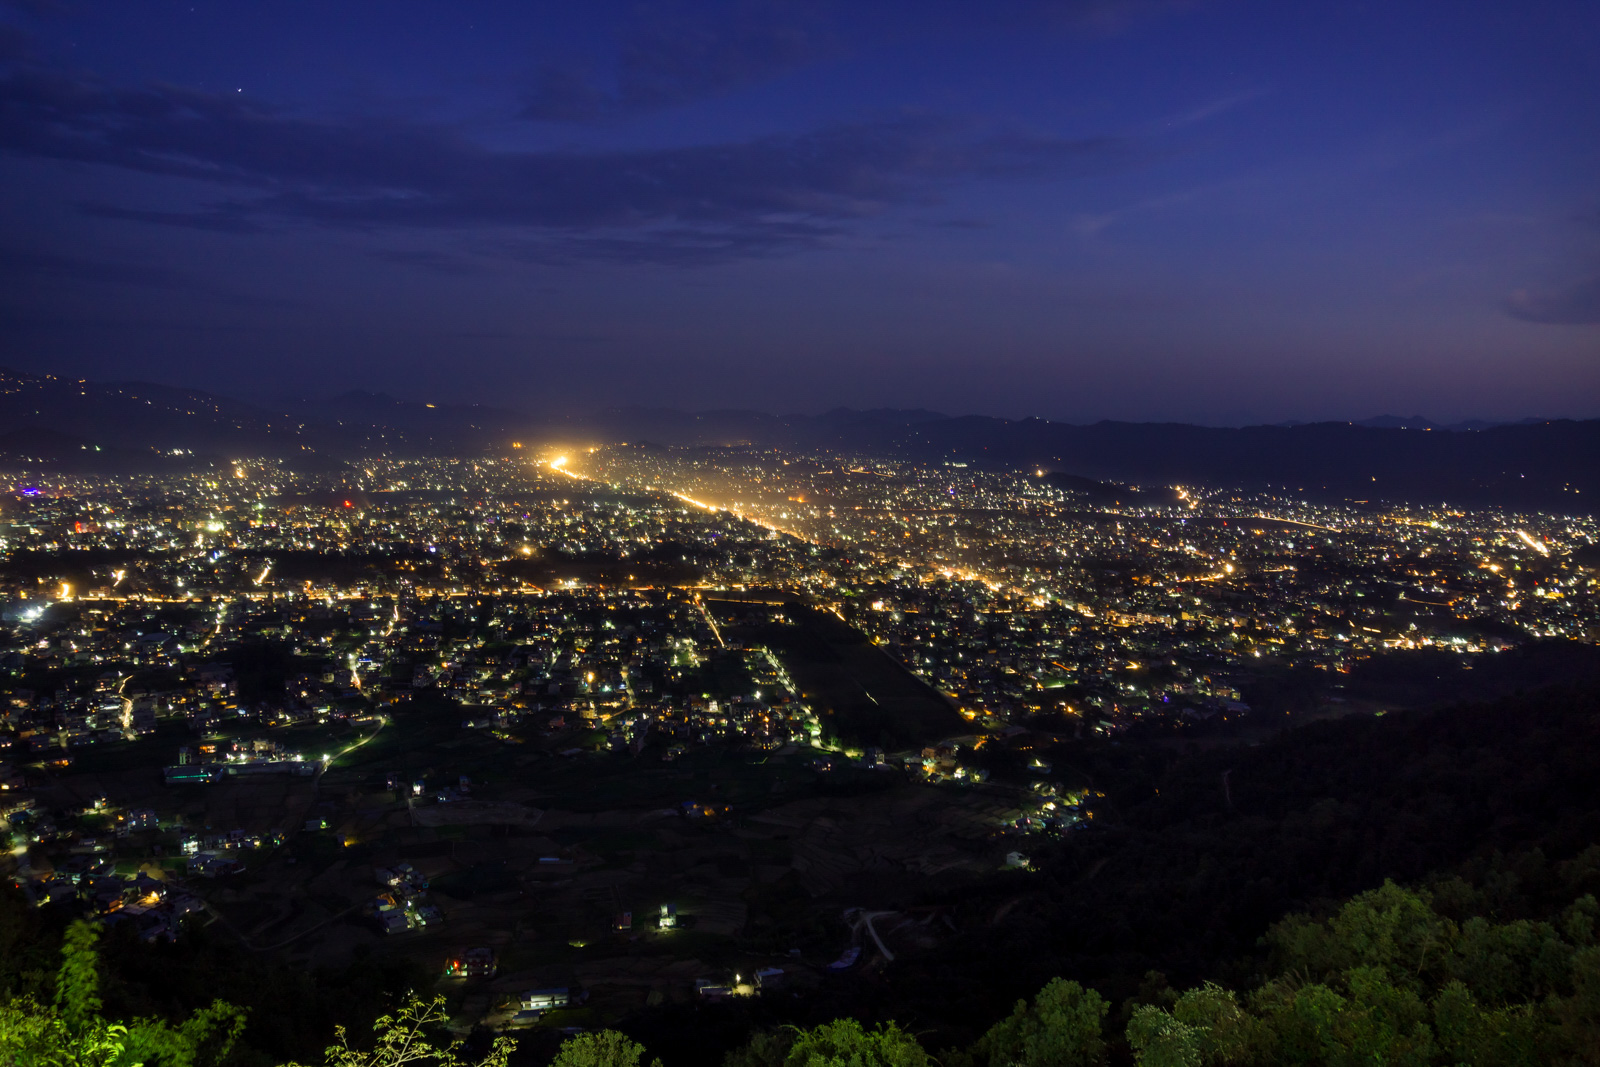 Night view of Pokhara city